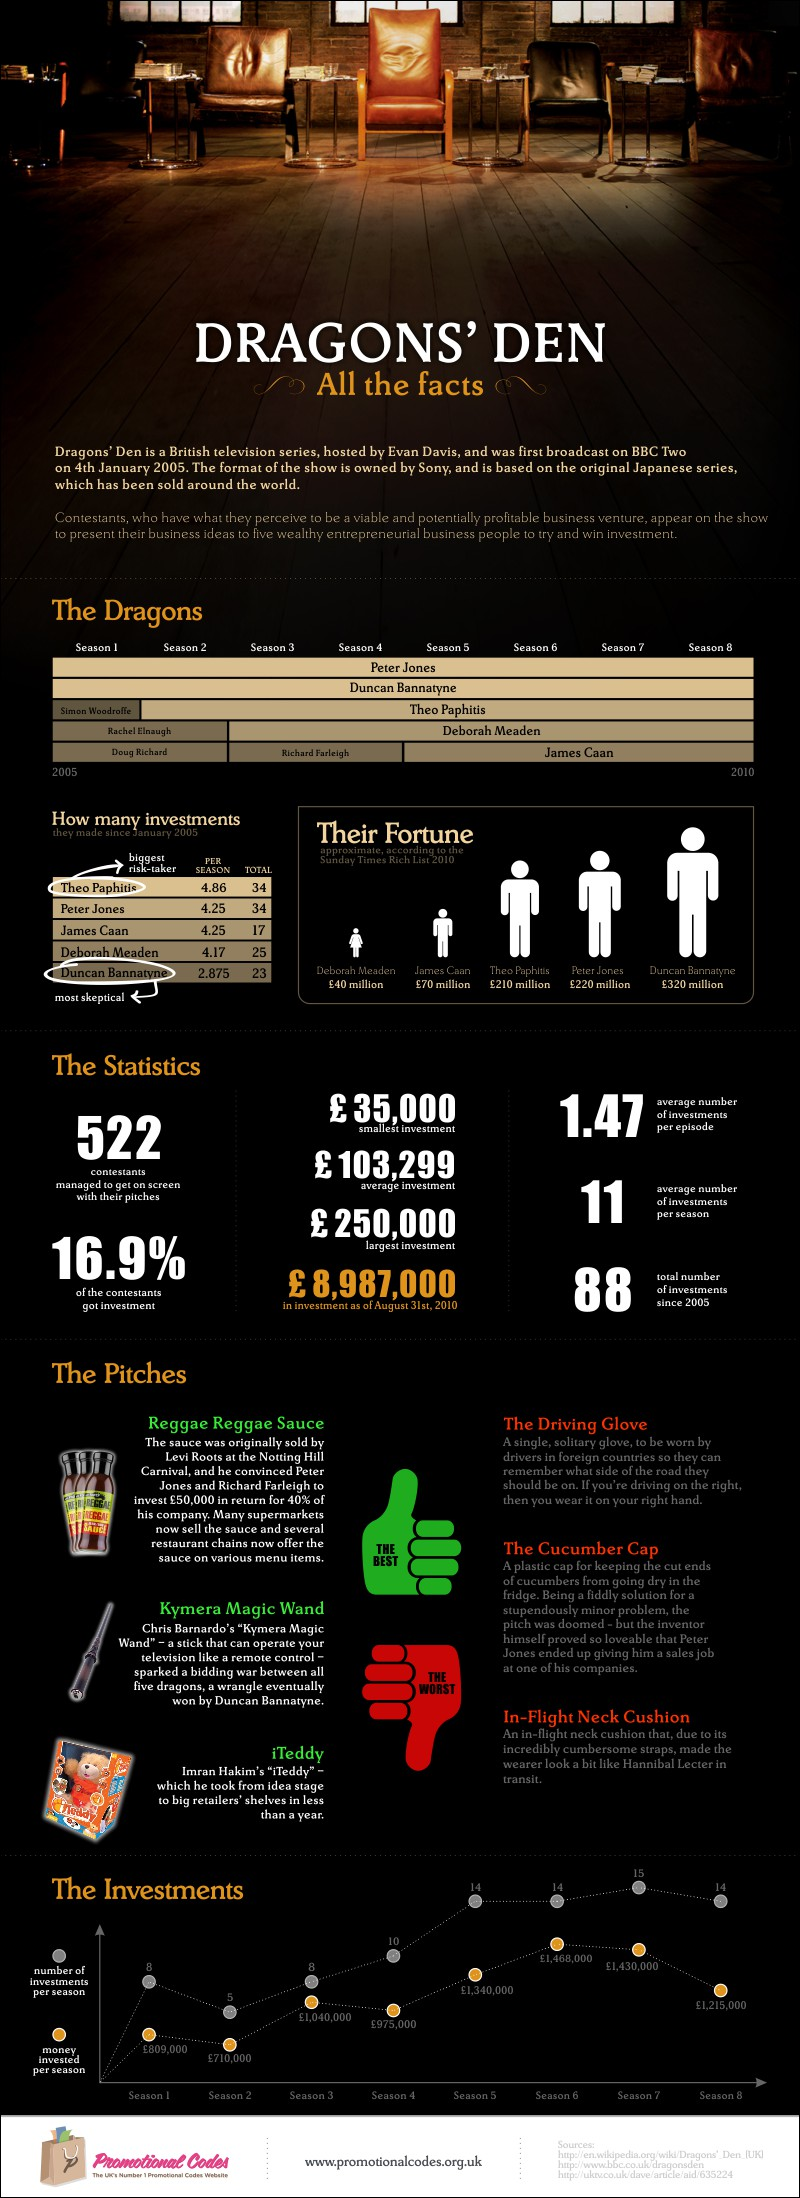 Dragons Den Facts: The Dragons, Pitchers, Investments & Statistics